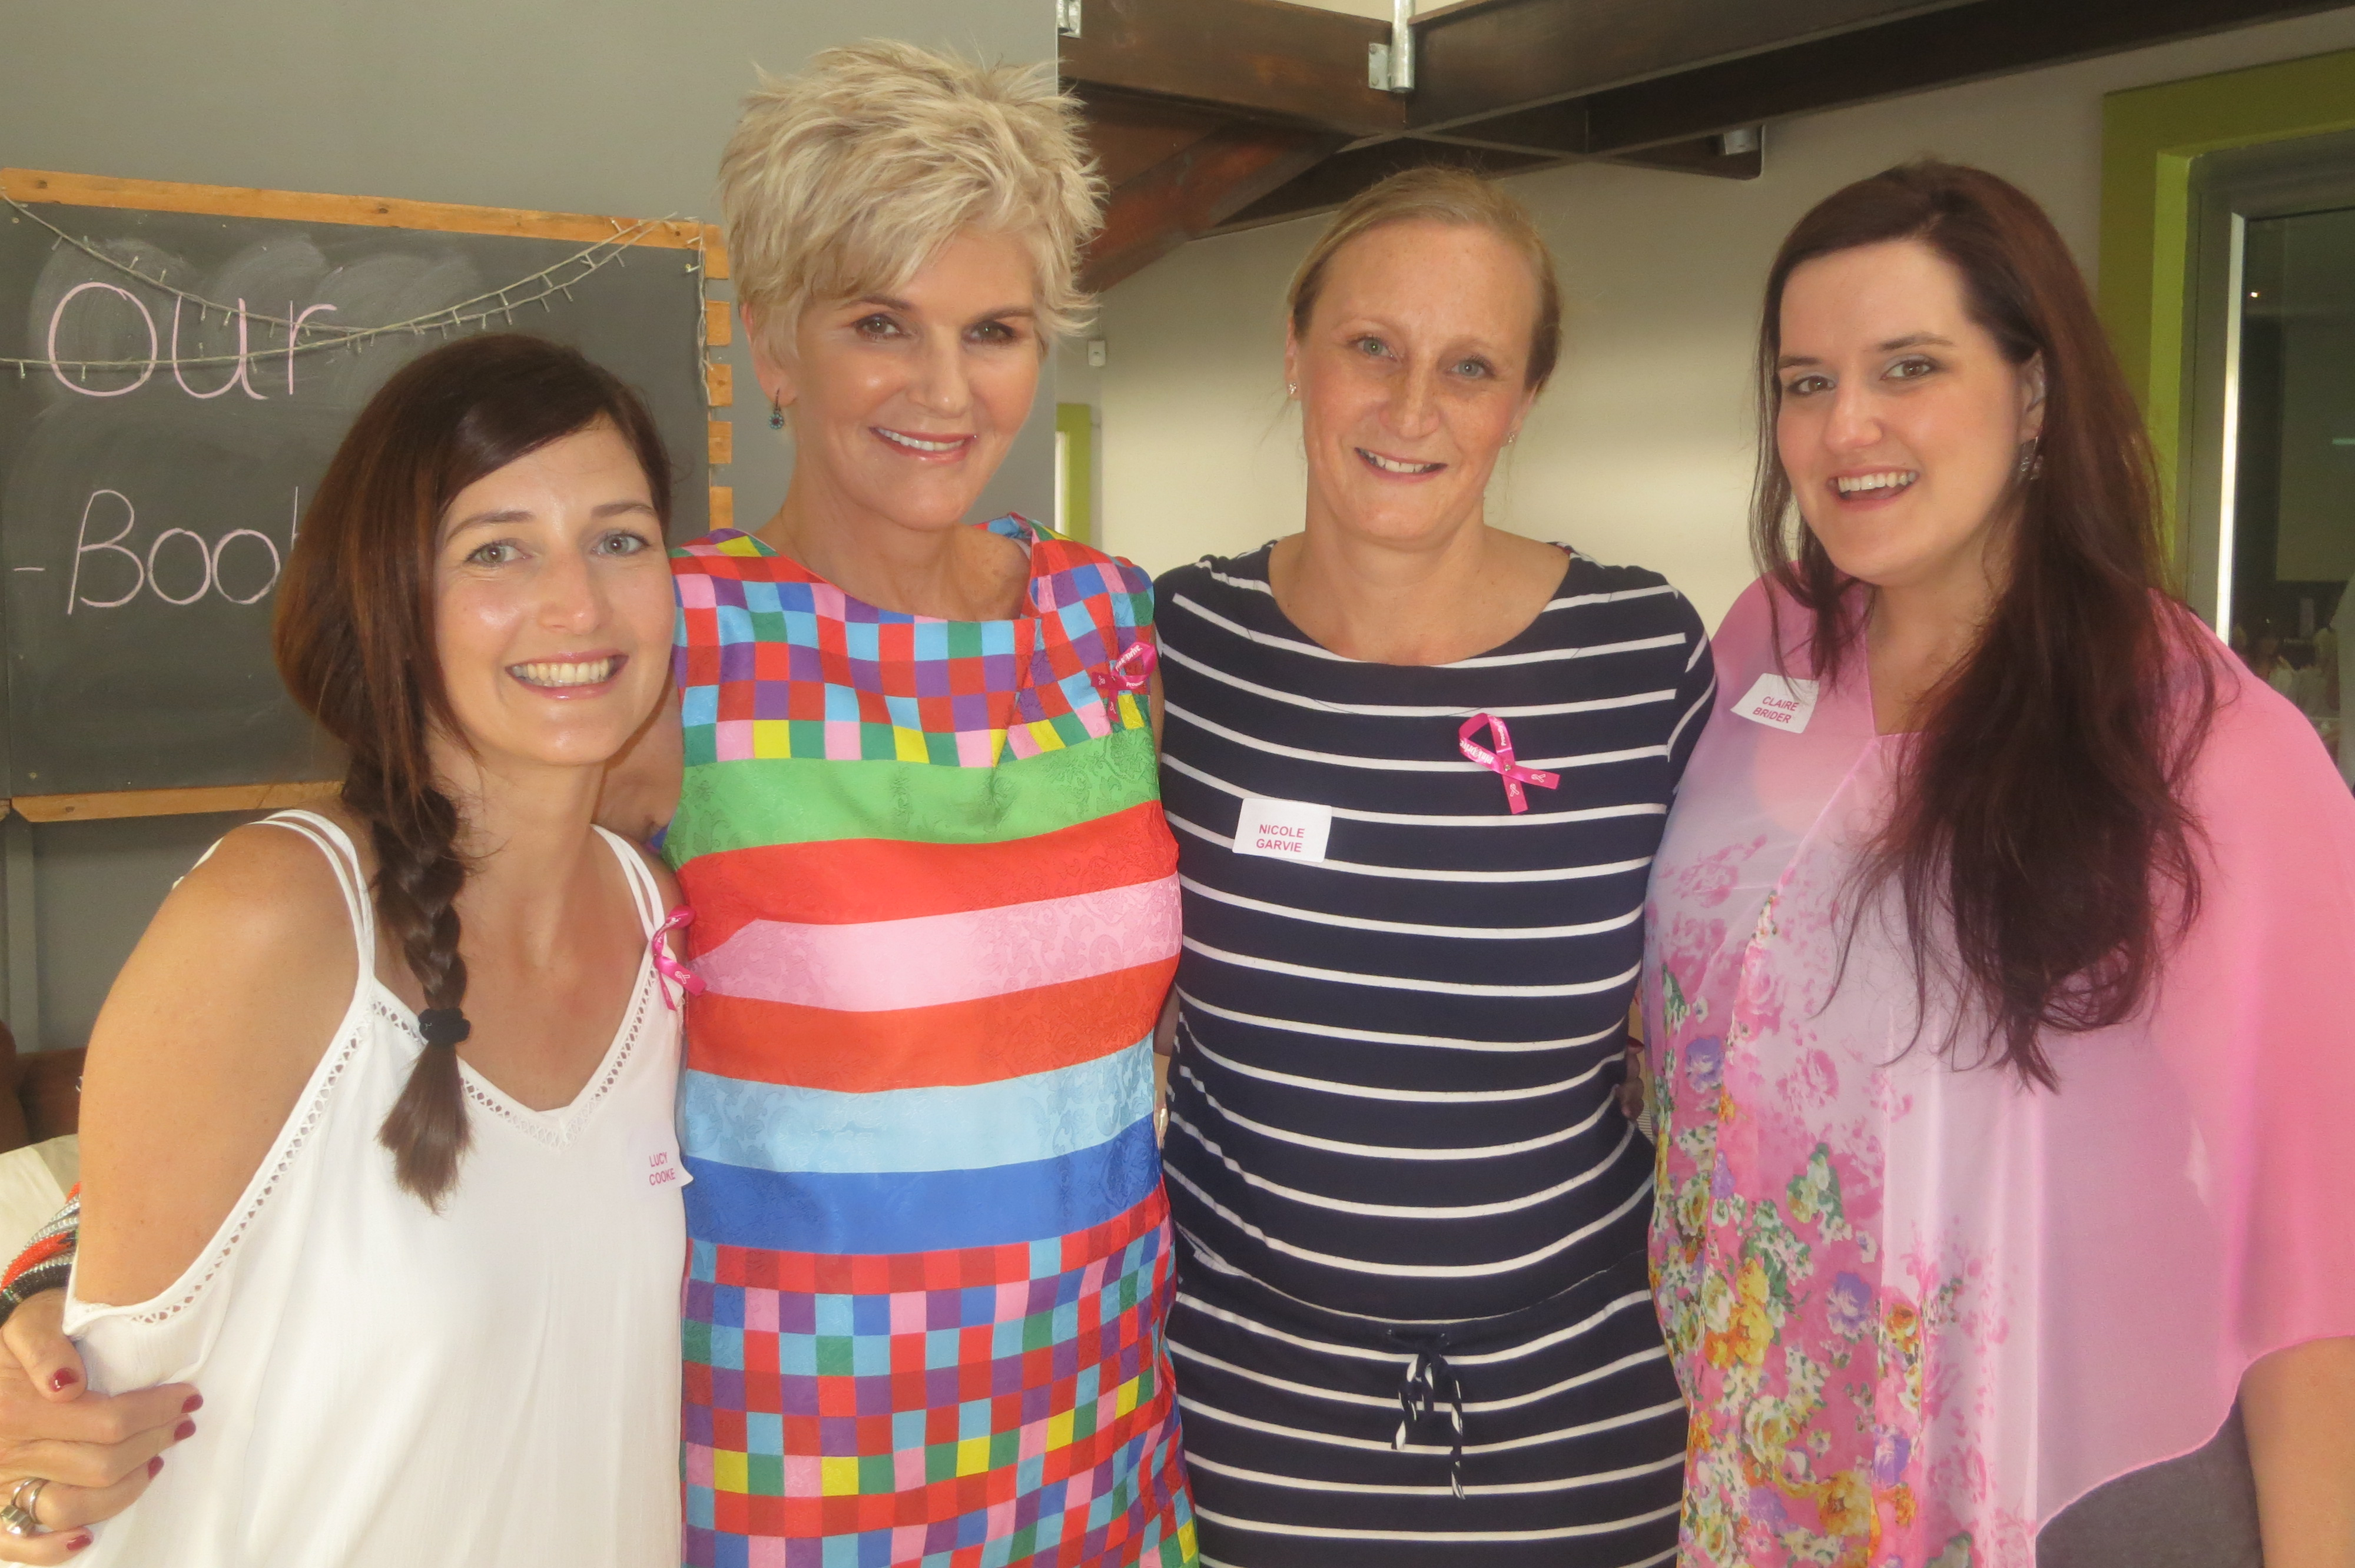 Lucy Cooke, PJ Powers, Nicole Garvie and Clair Brider